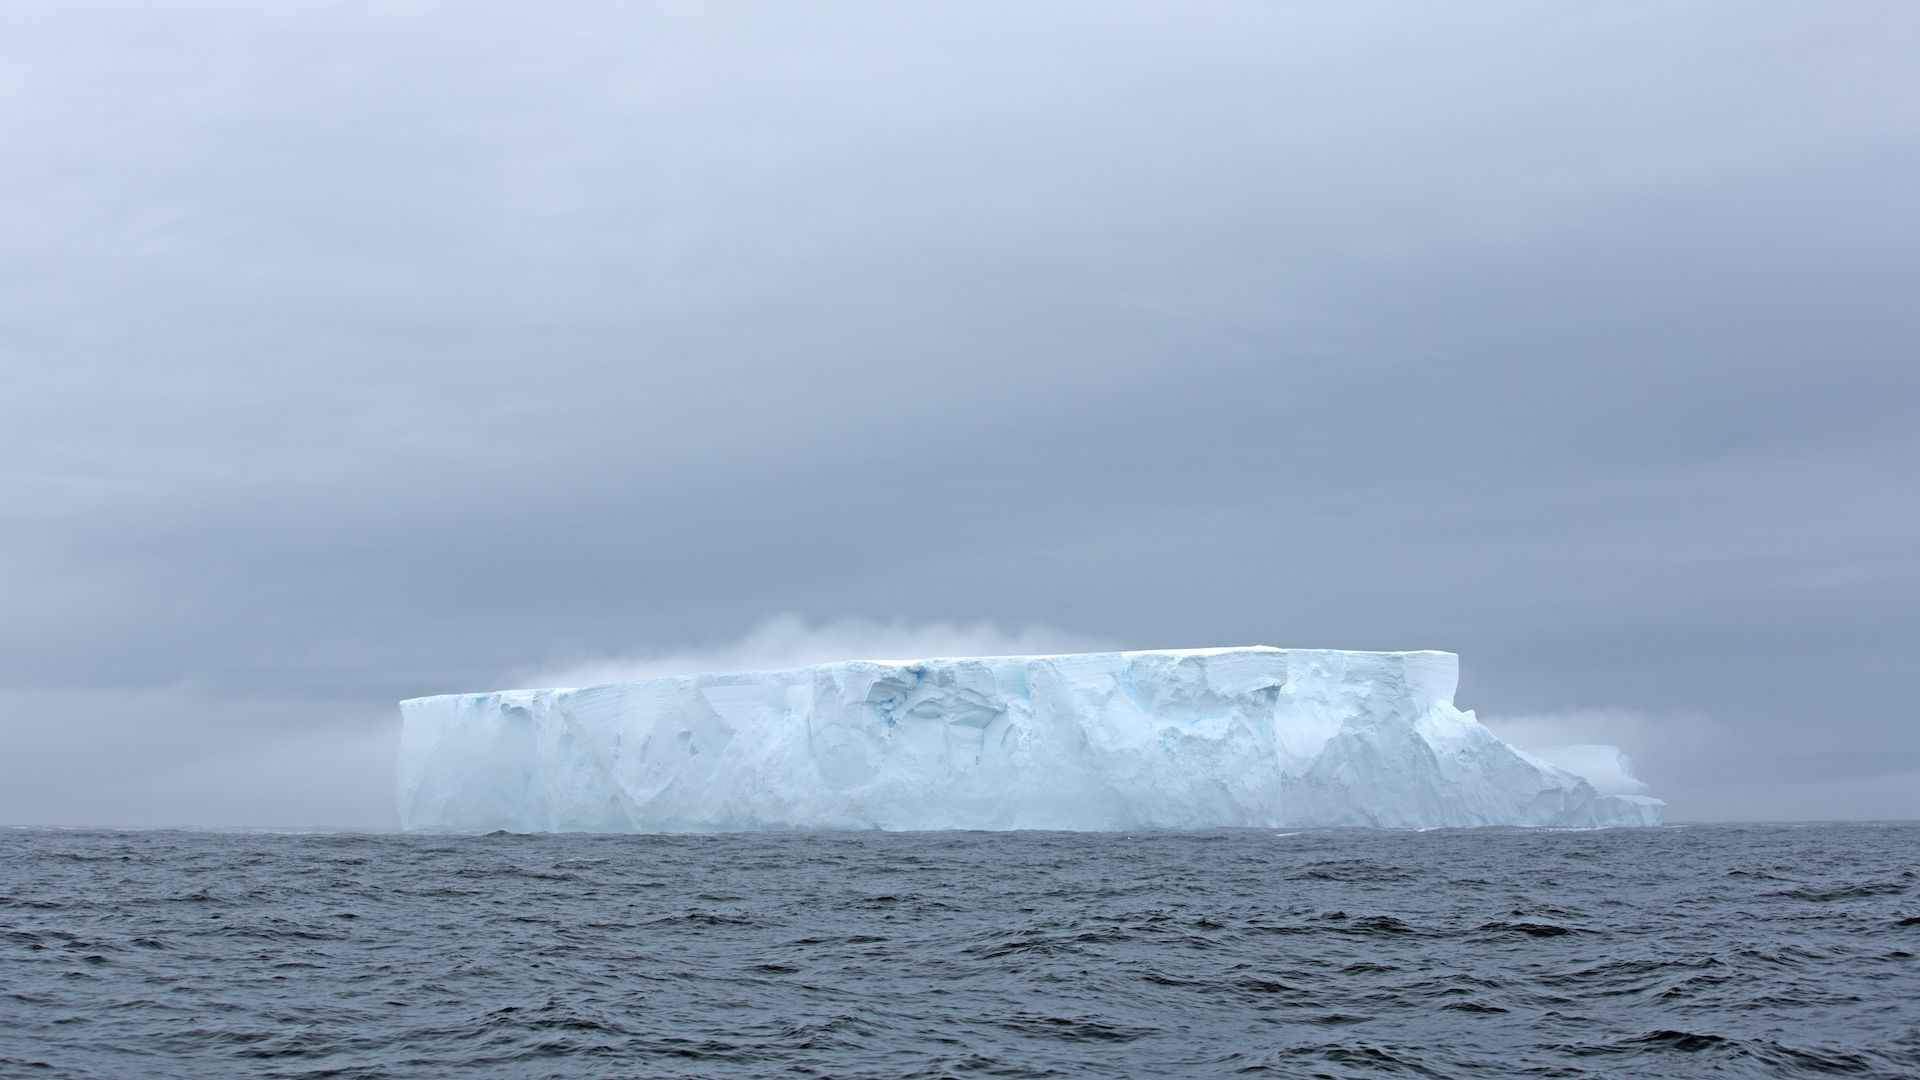 An iceberg in the Southern Ocean, where deeper ocean layers are warming and freshening.